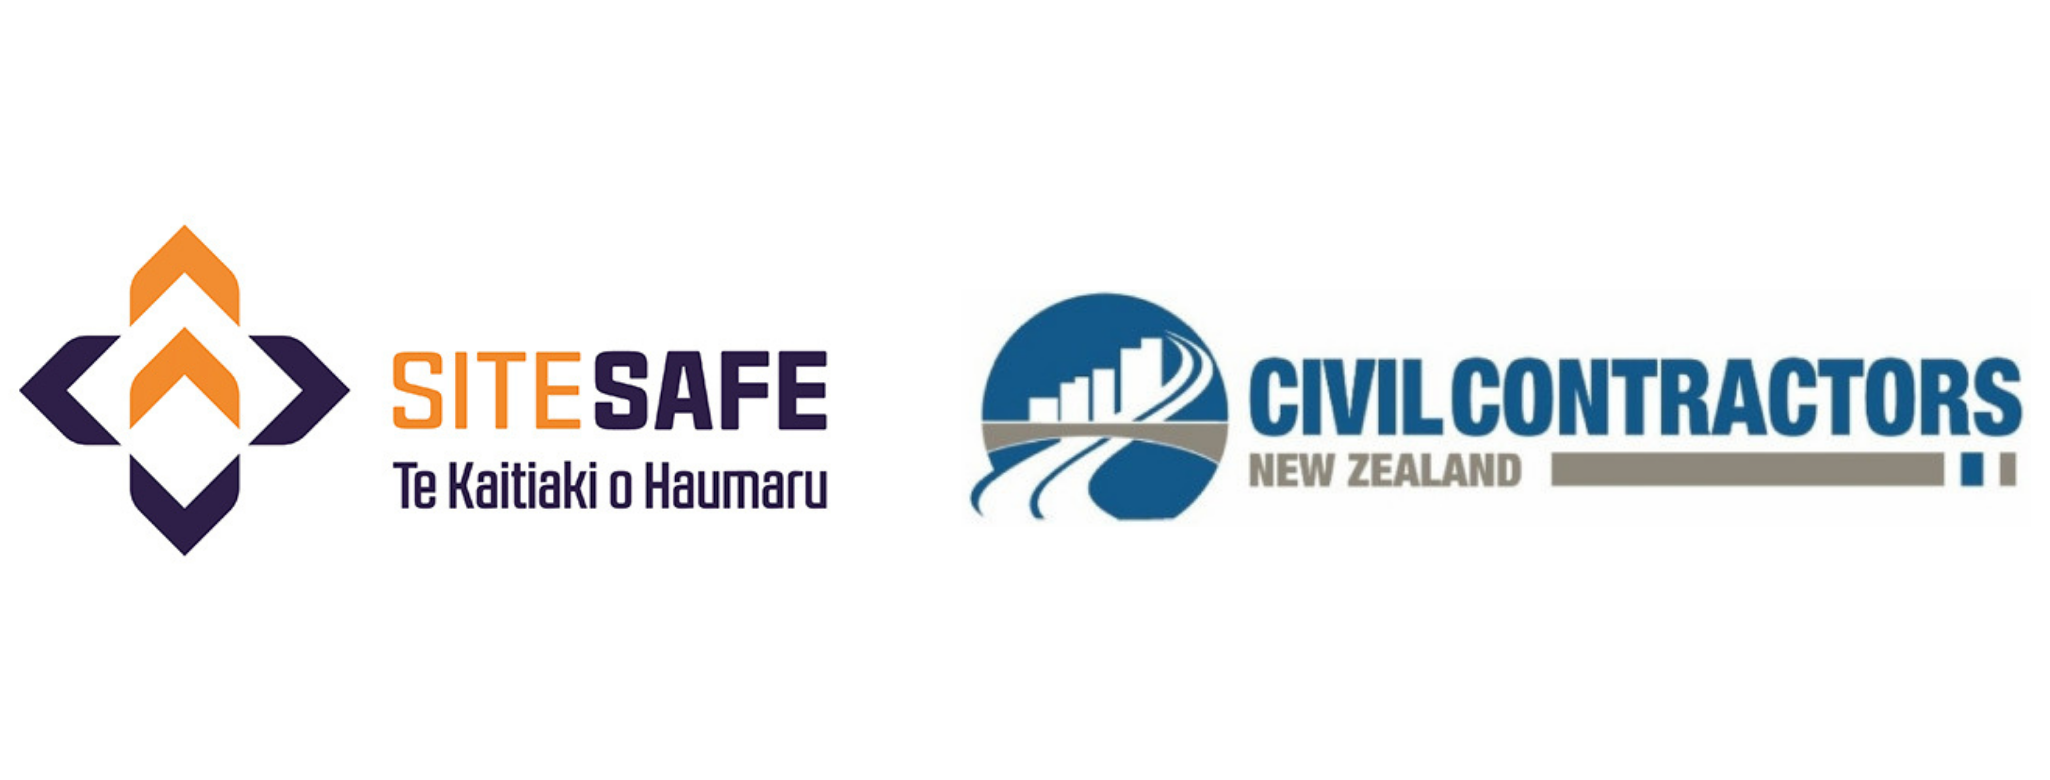 Site Safe and Civil Contractors